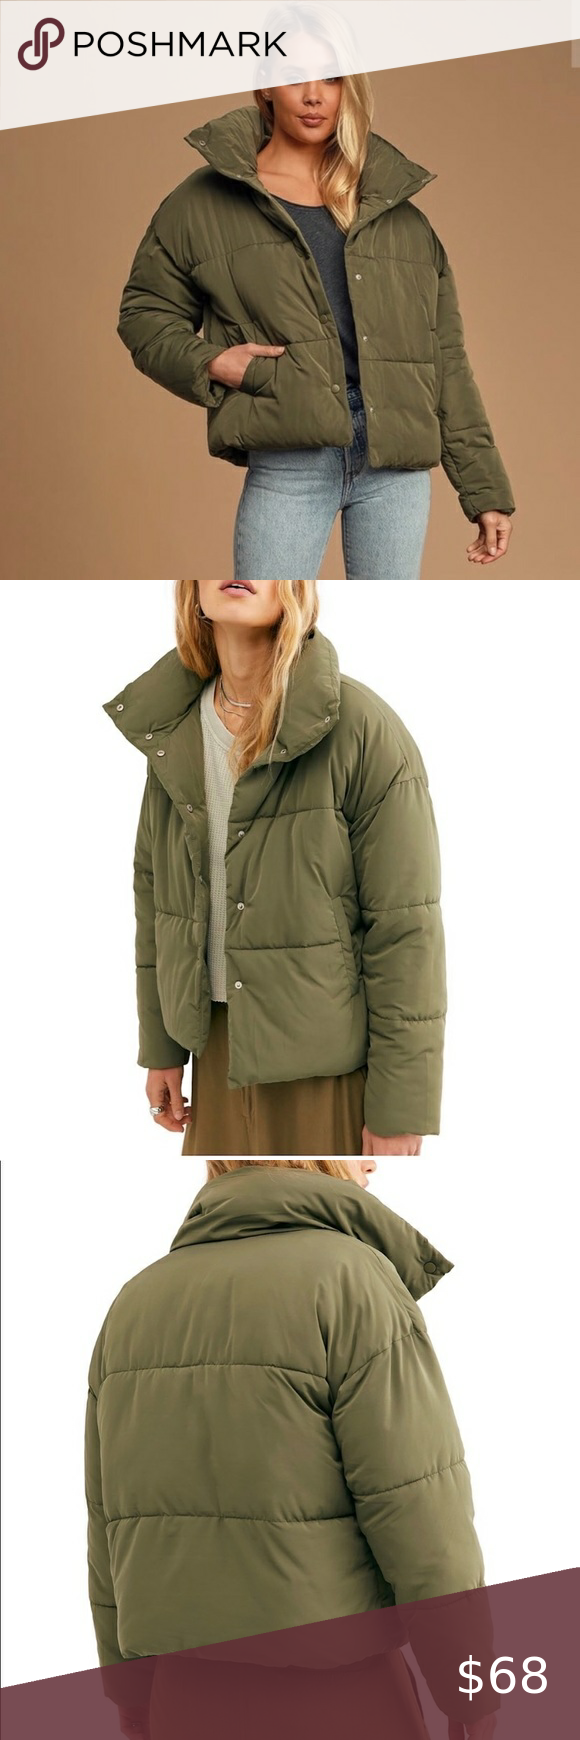 Free People Weekender Puffer Jacket Nwt Stay Warm And On Trend Featuring Mock Neck Front Snap Closure And Poc In 2020 Free People Jacket Puffer Jackets Olive Free [ 1740 x 580 Pixel ]